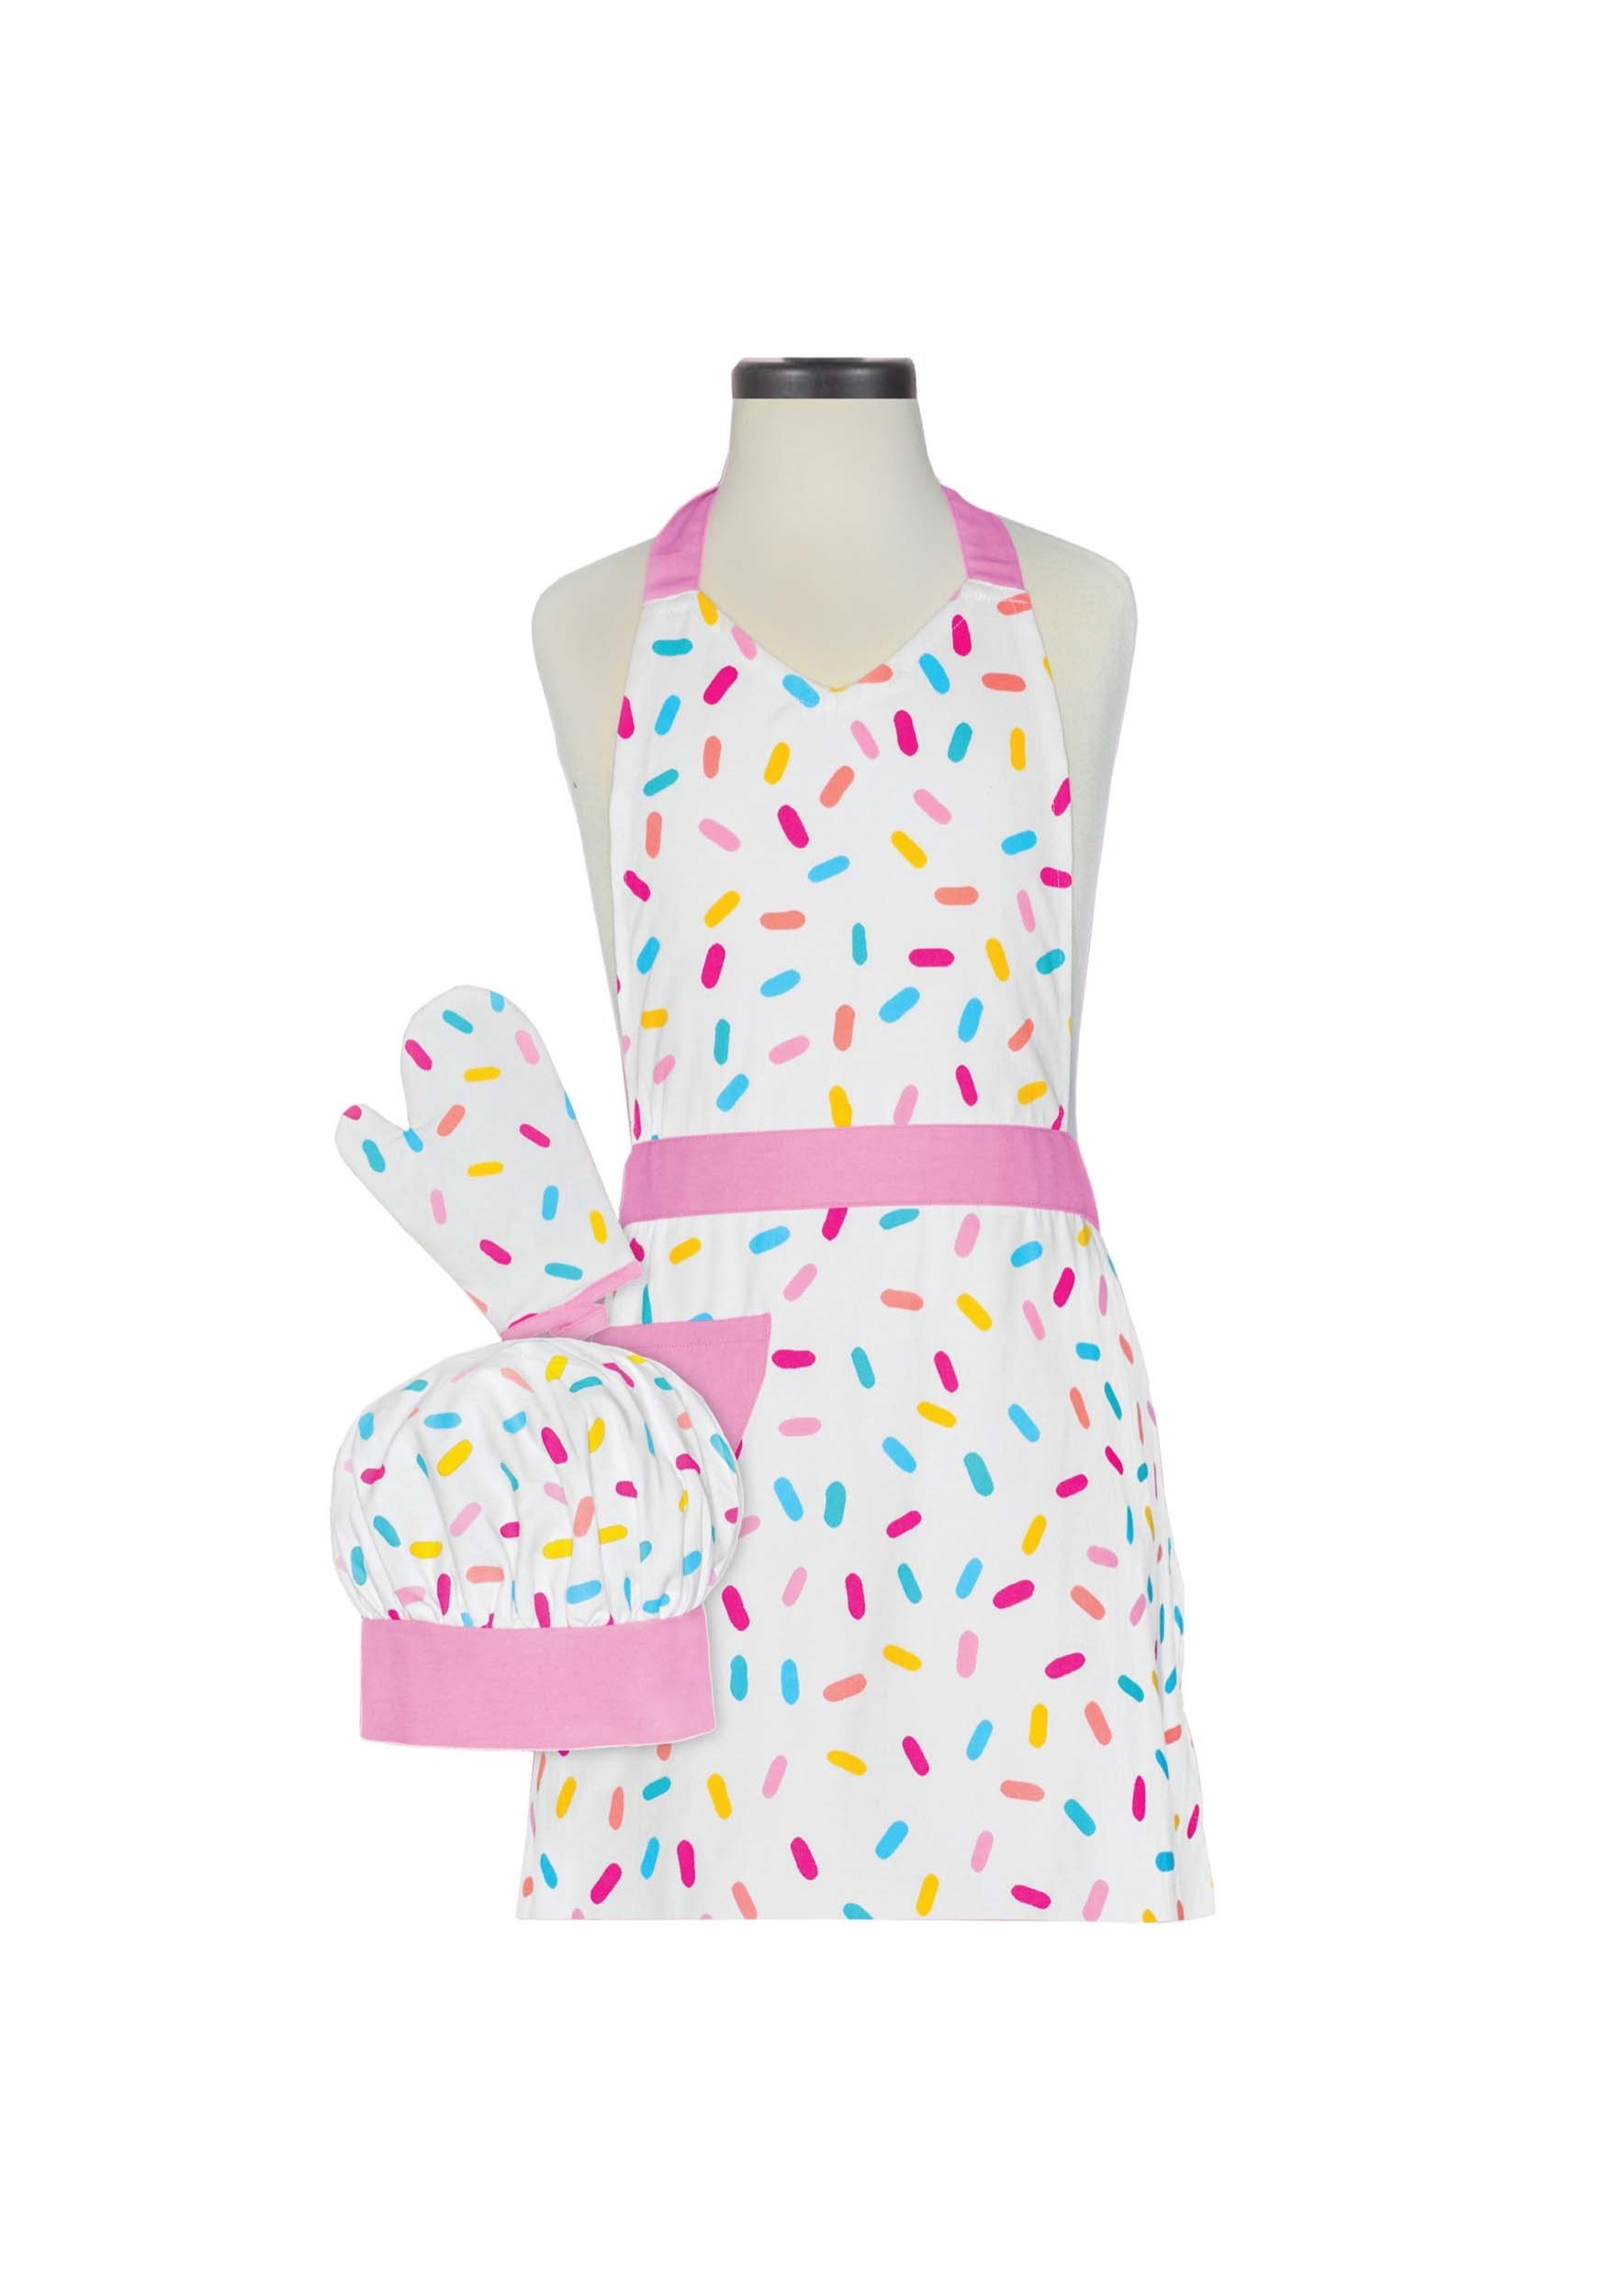 Sprinkles Deluxe Kid Apron Box Set